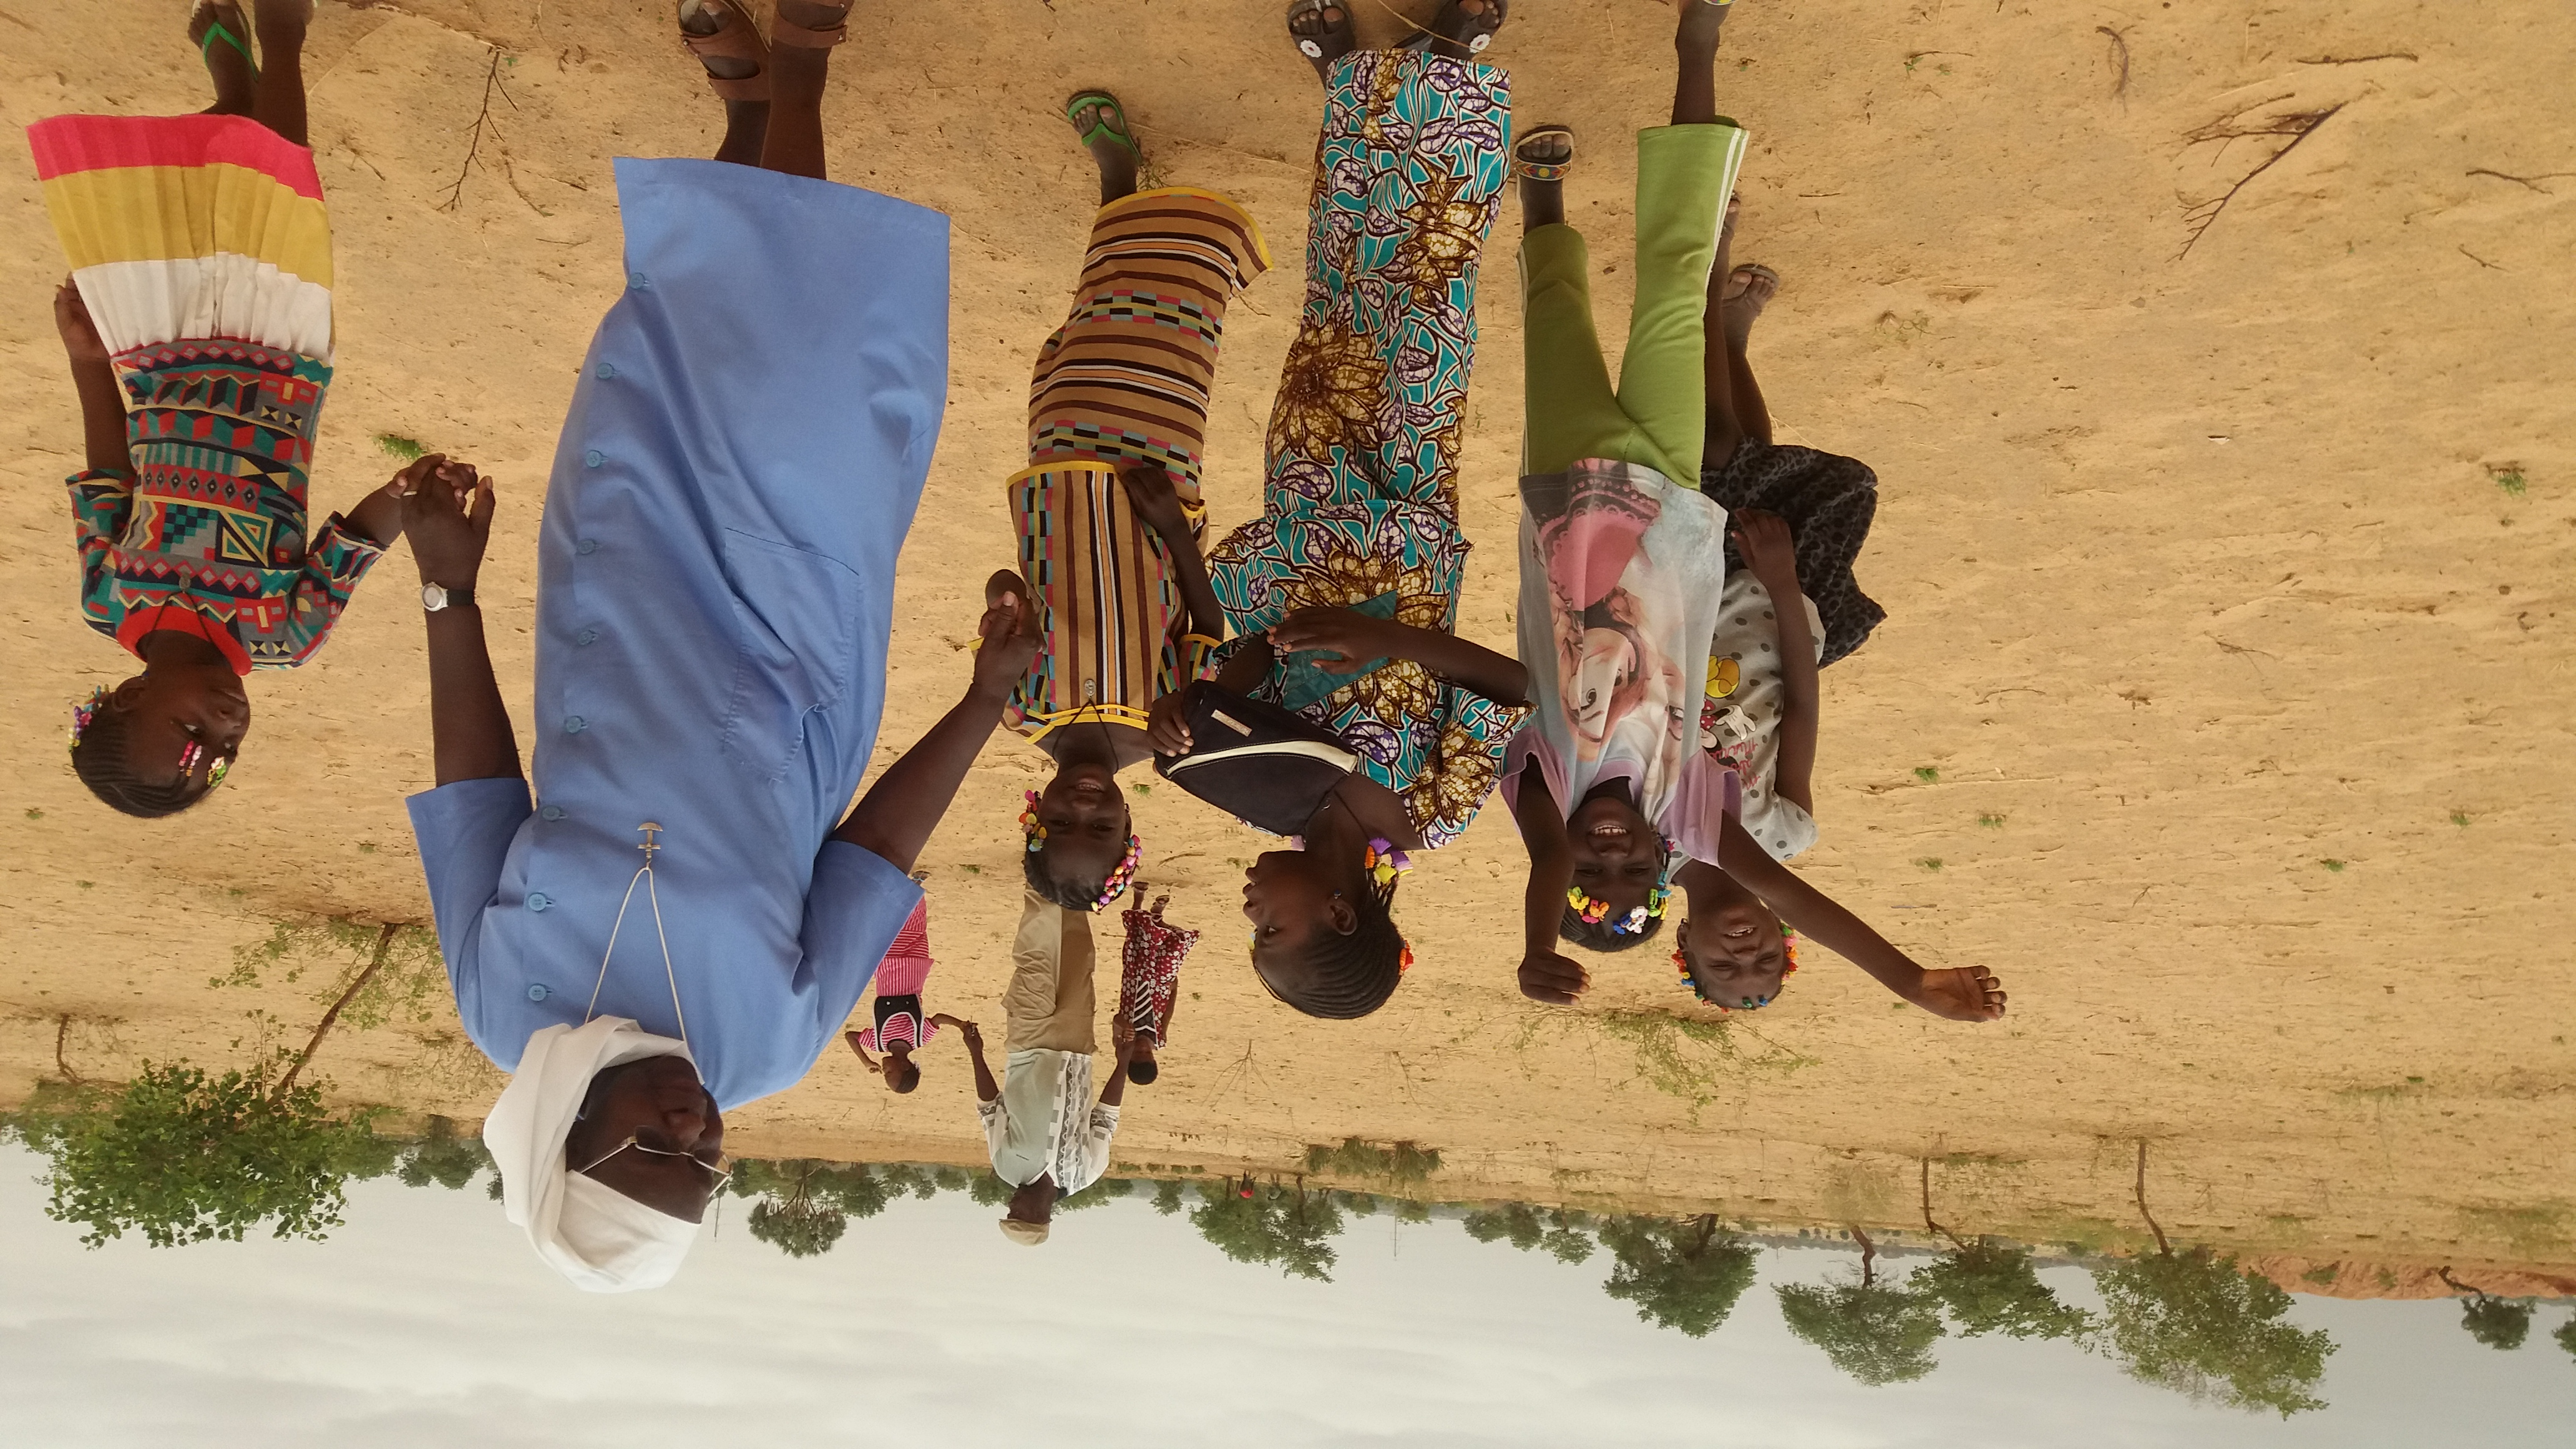 Catholic nun in Niger dies - she gave her life for the poor of the poorest